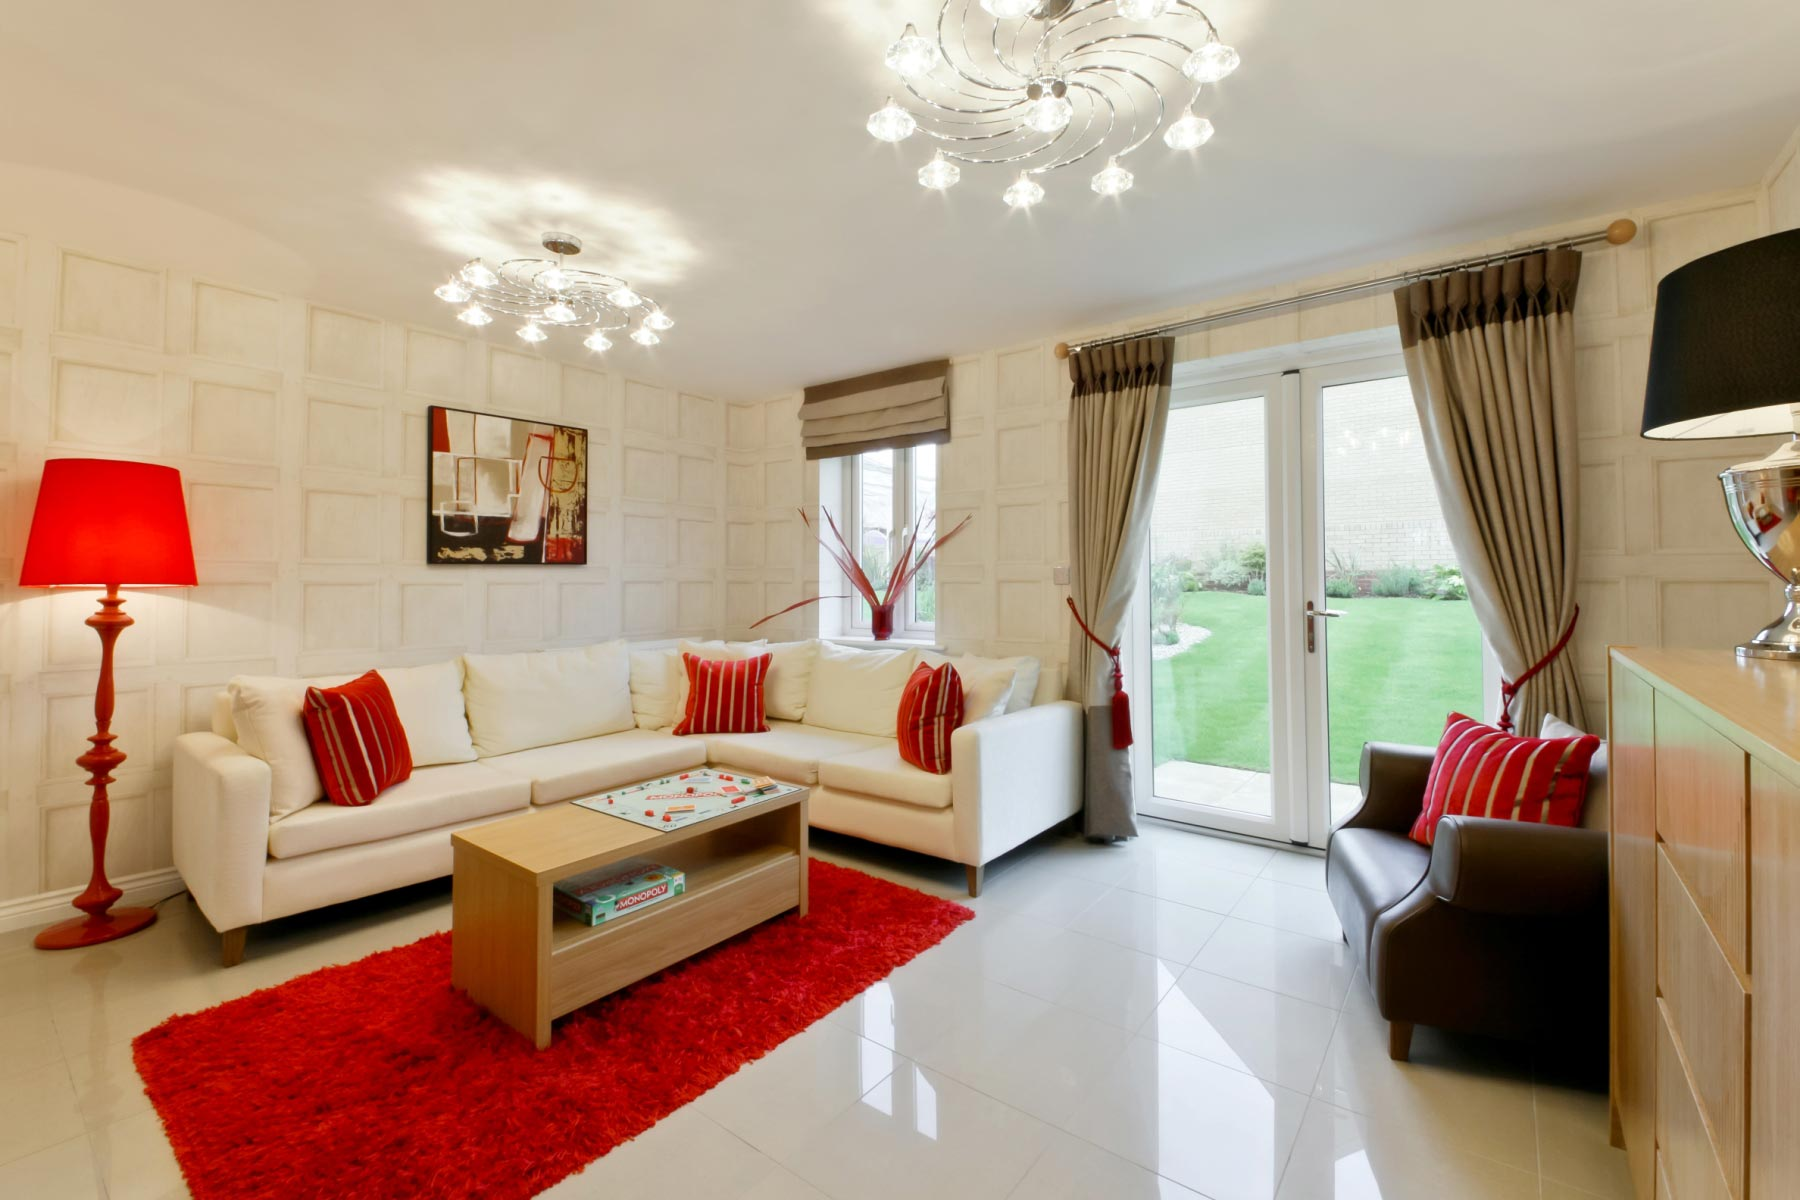 Taylor Wimpey - Typical family room